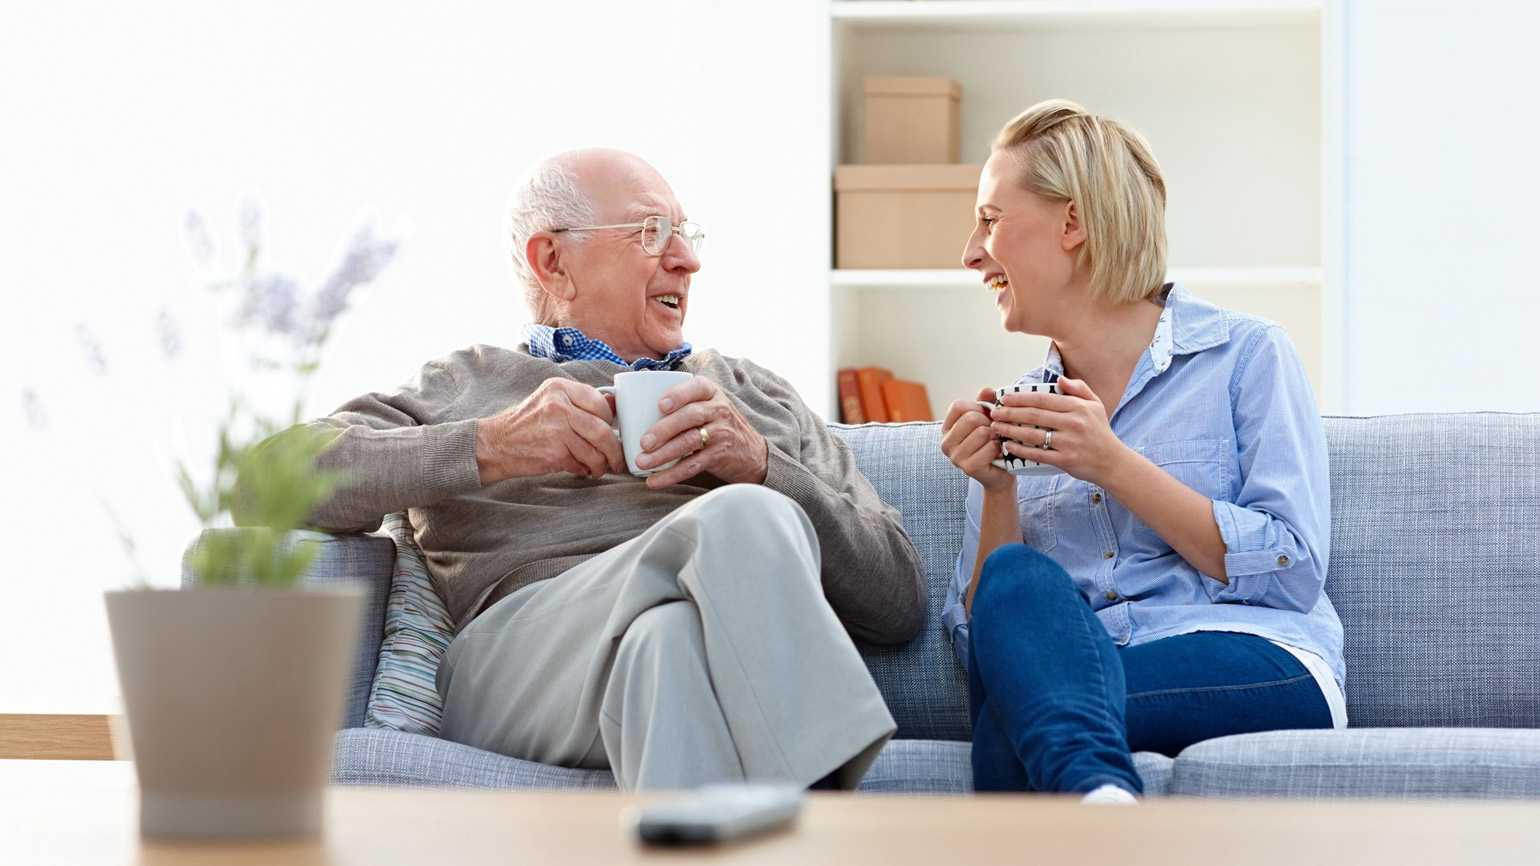 A senior father and his caregiver daughter having a laugh in their home.